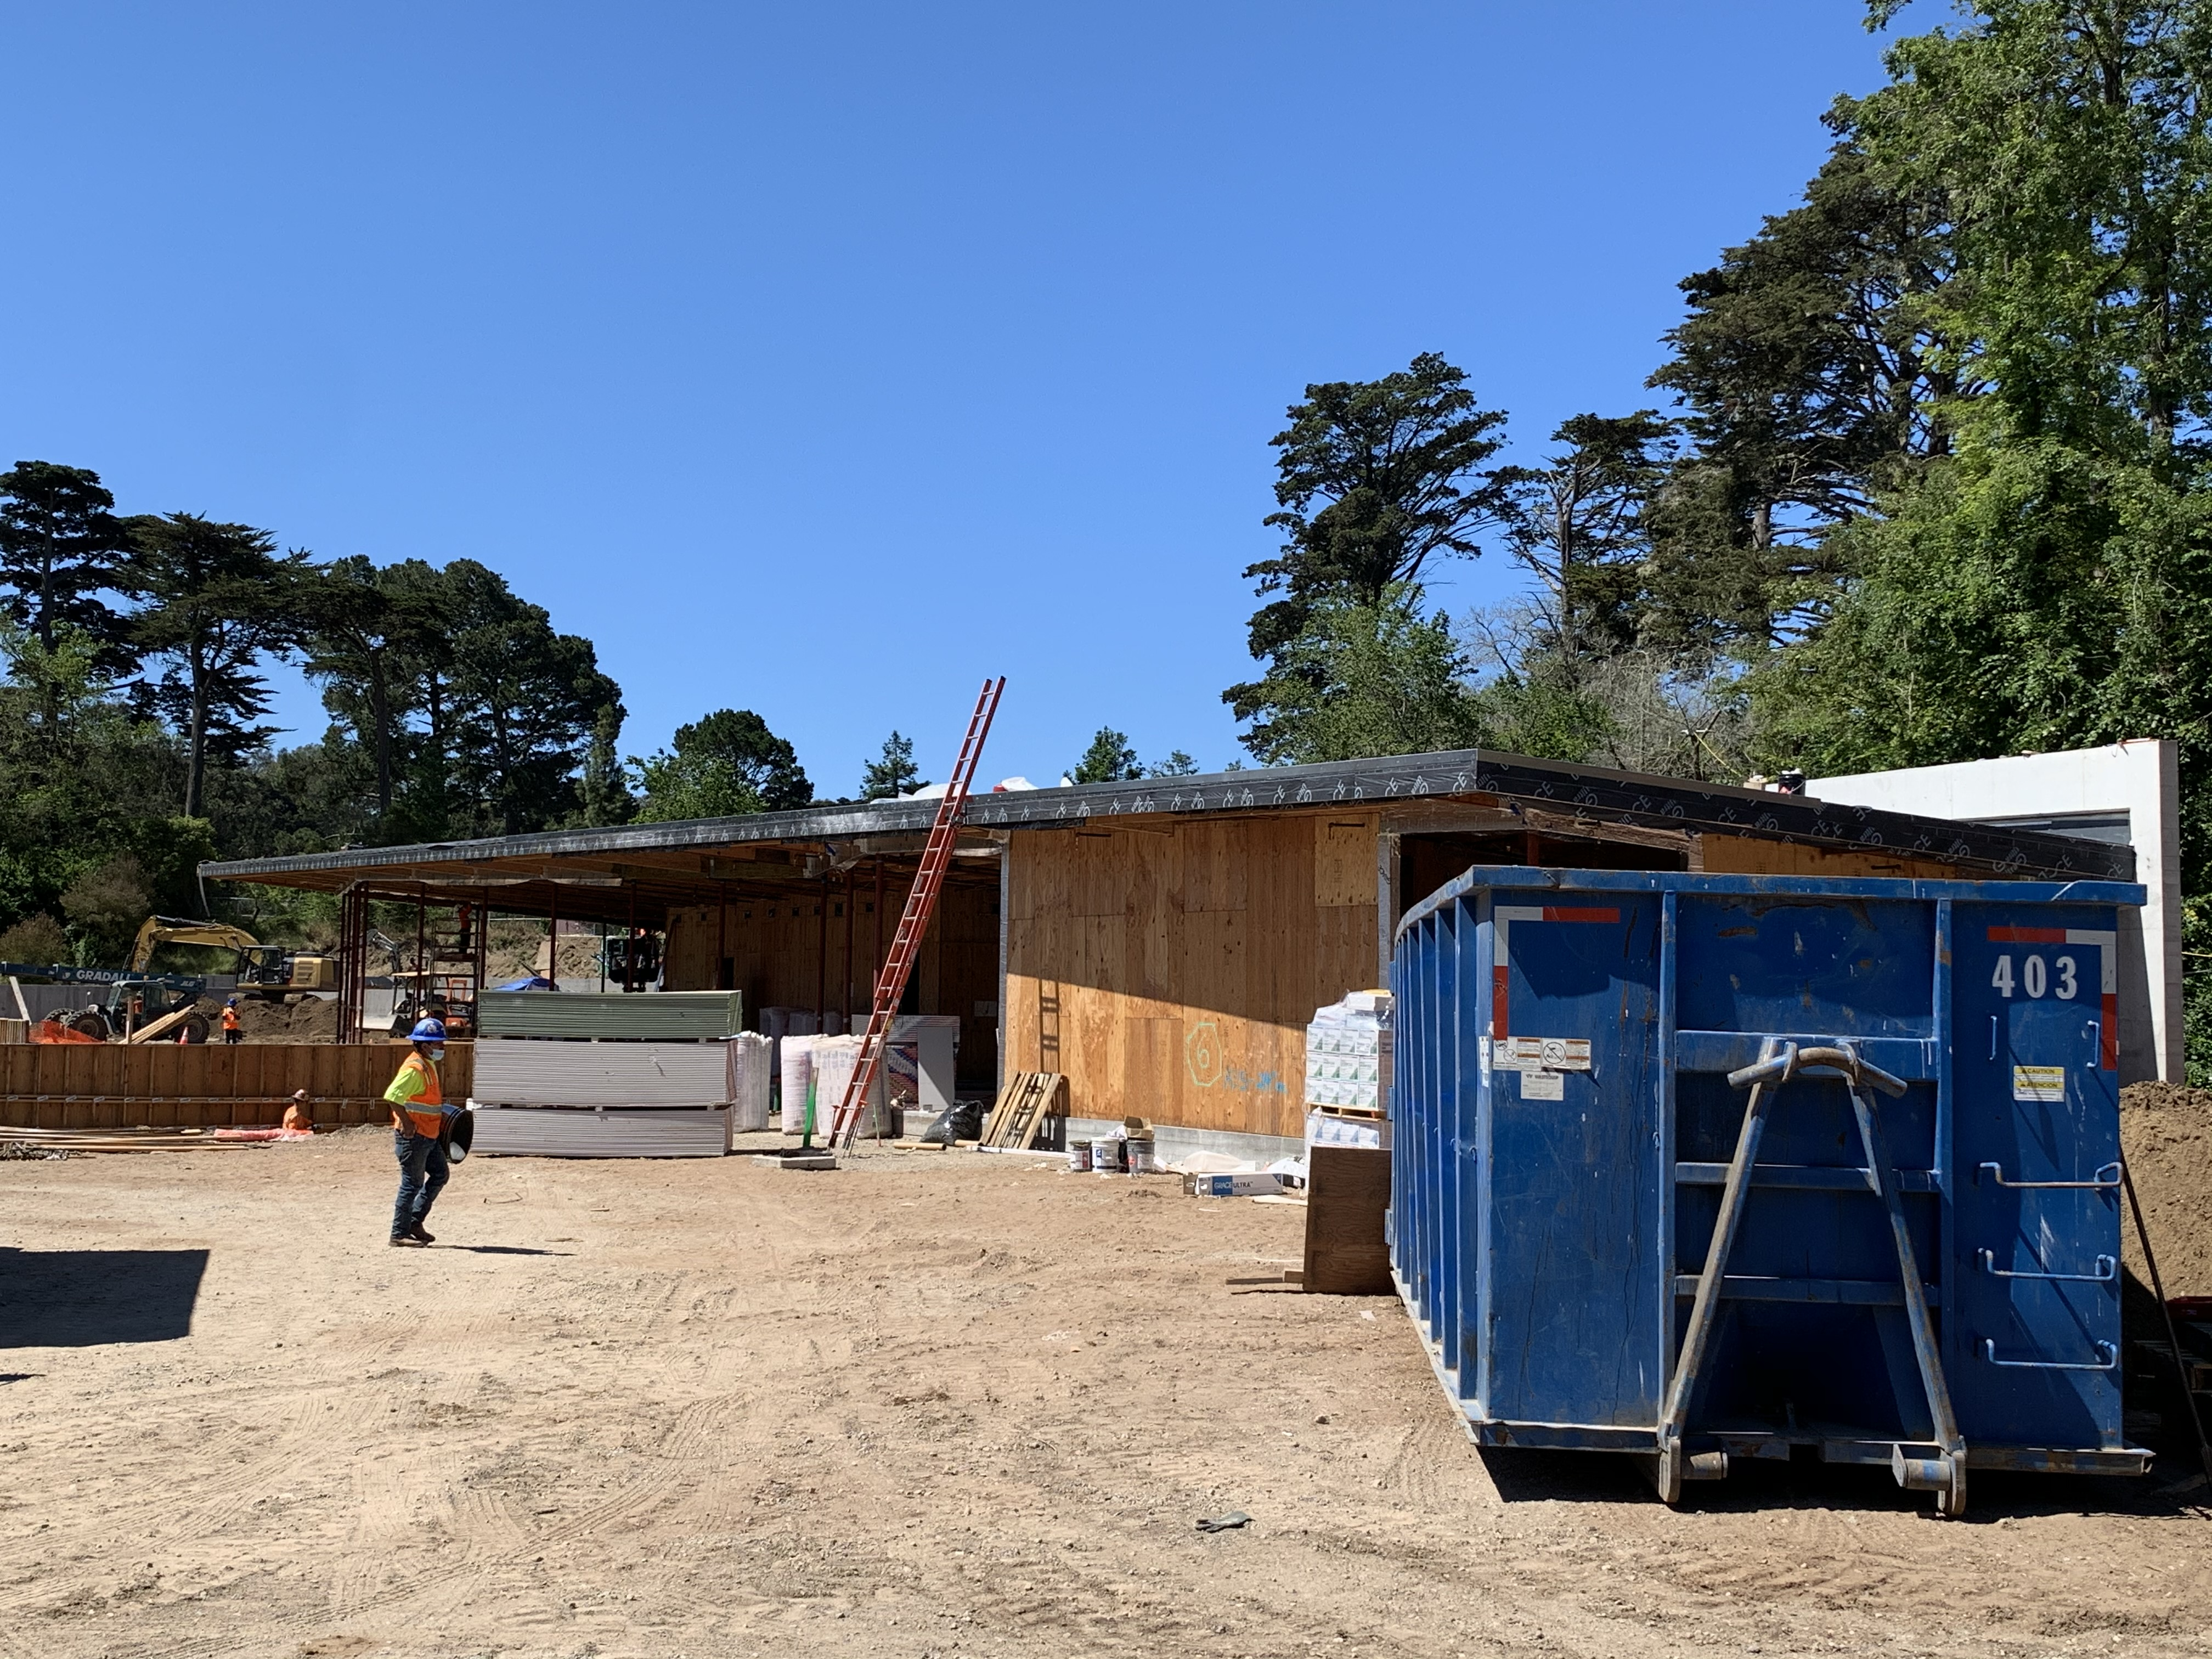 Golden Gate Park Tennis Center Construction June 2020 3